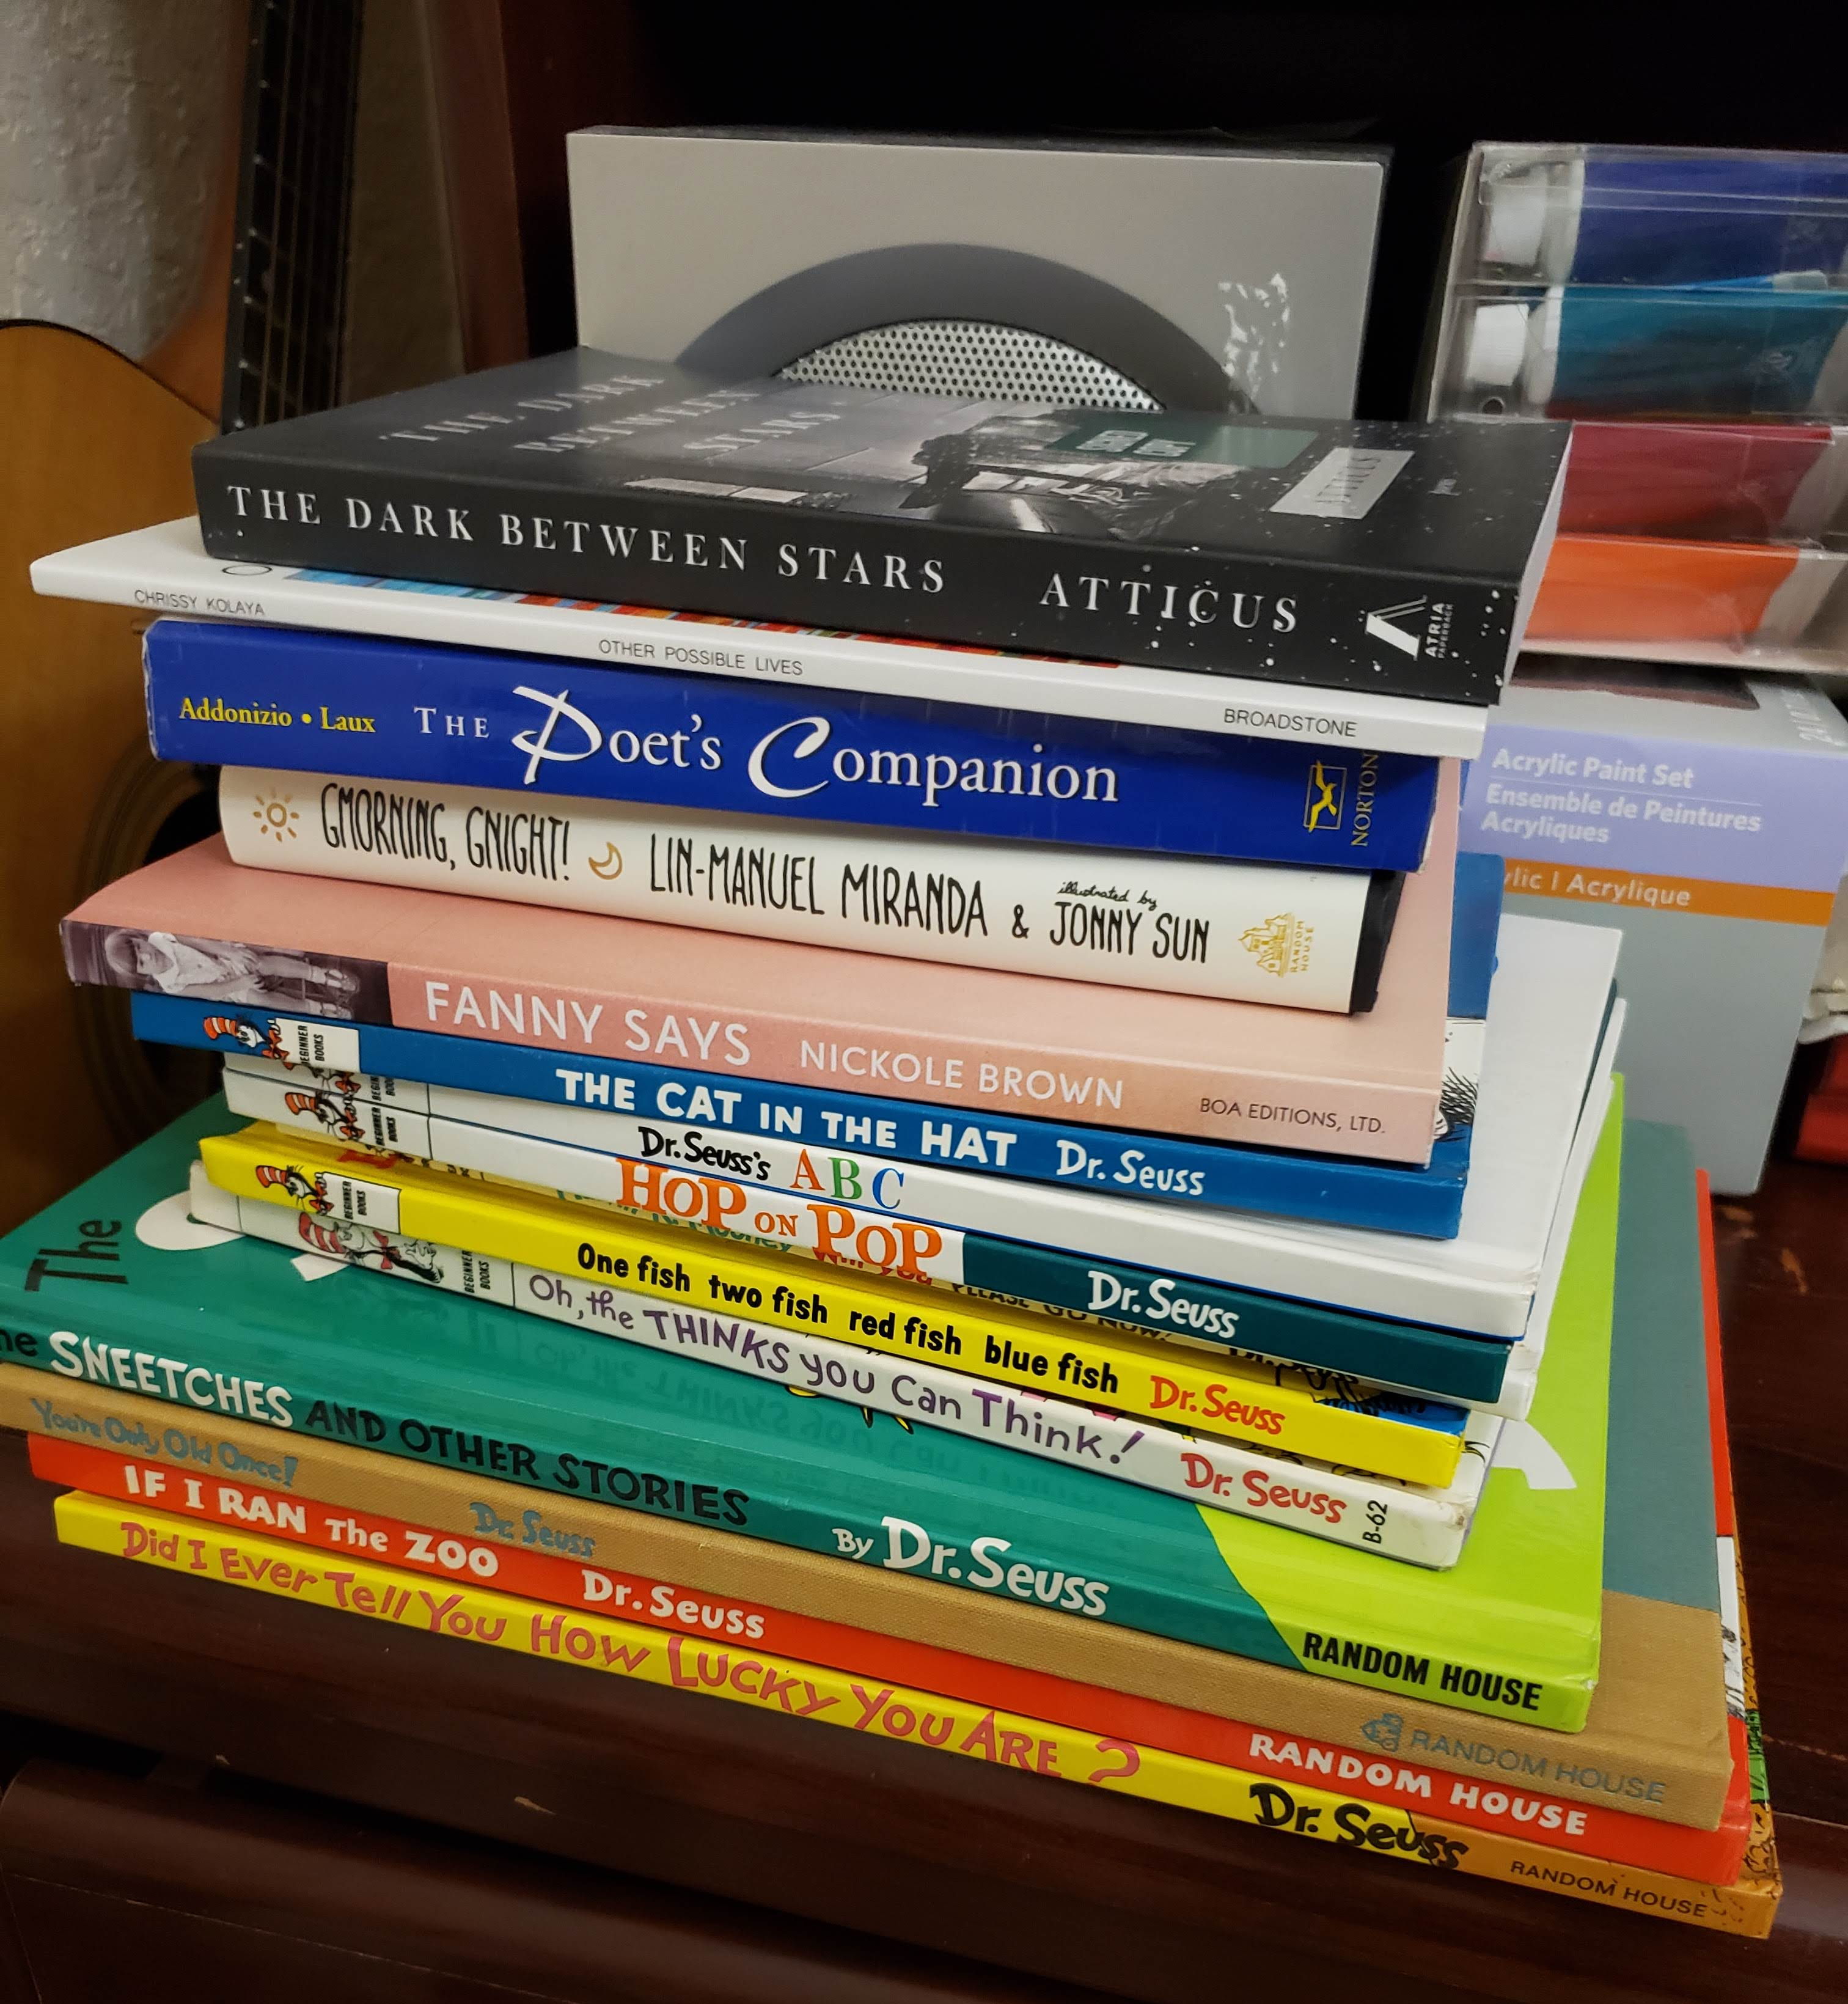 Pictured are the poetry books that I have so far for the Sealey Challenge, but they won't last me beyond the week. Especially if I'm thinking of reading 5 Dr. Seuss books a day. So feel free to share with me some of your favorite poets, because I will be needing it.